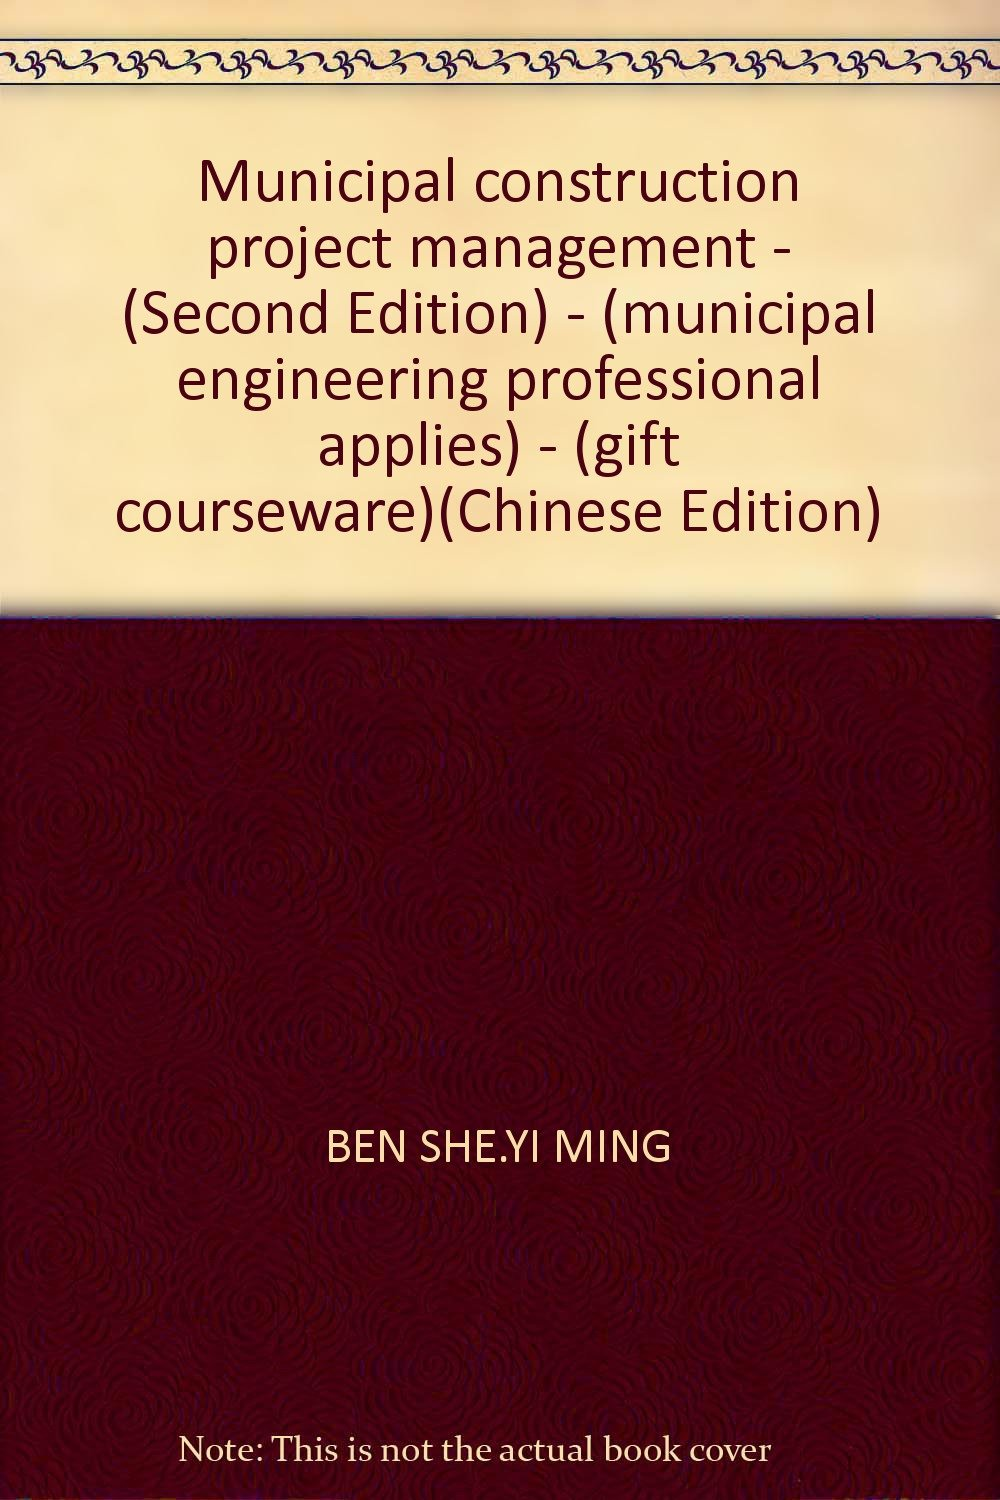 Read Online Municipal construction project management - (Second Edition) - (municipal engineering professional applies) - (gift courseware)(Chinese Edition) pdf